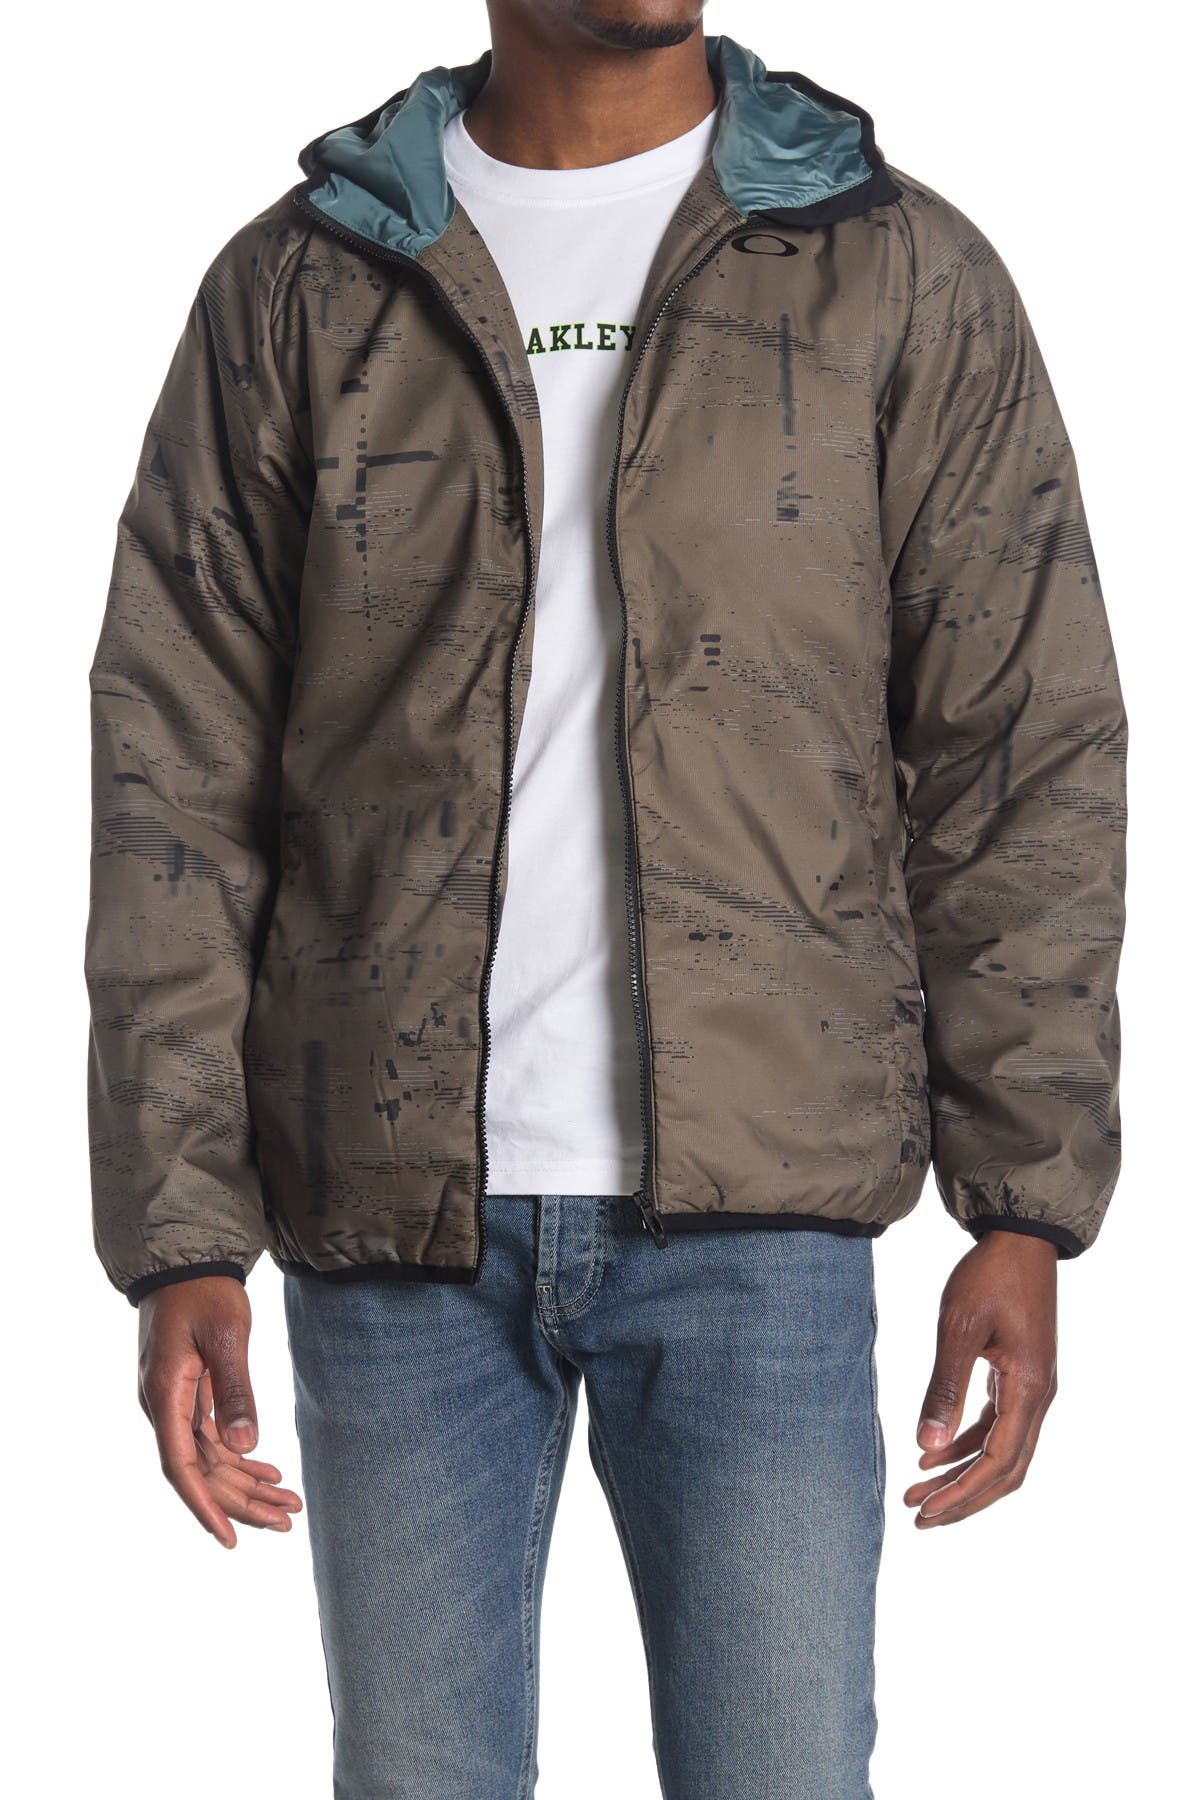 Image of Oakley Enhance Graphic Insulated Hooded Jacket